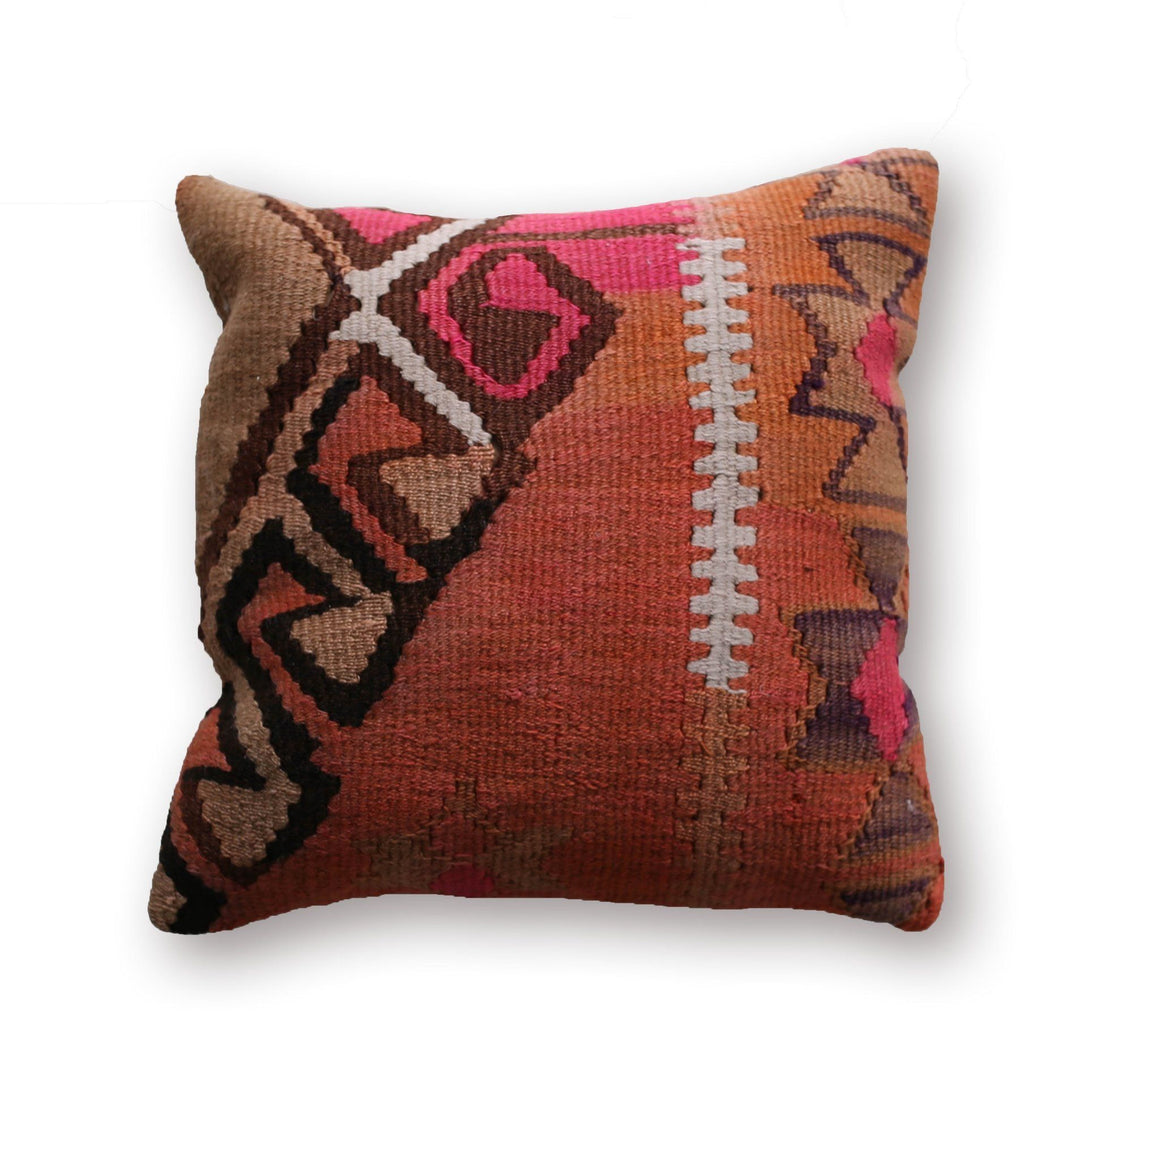 Kilim Pillow No. 11 - Canary Lane - Curated Textiles